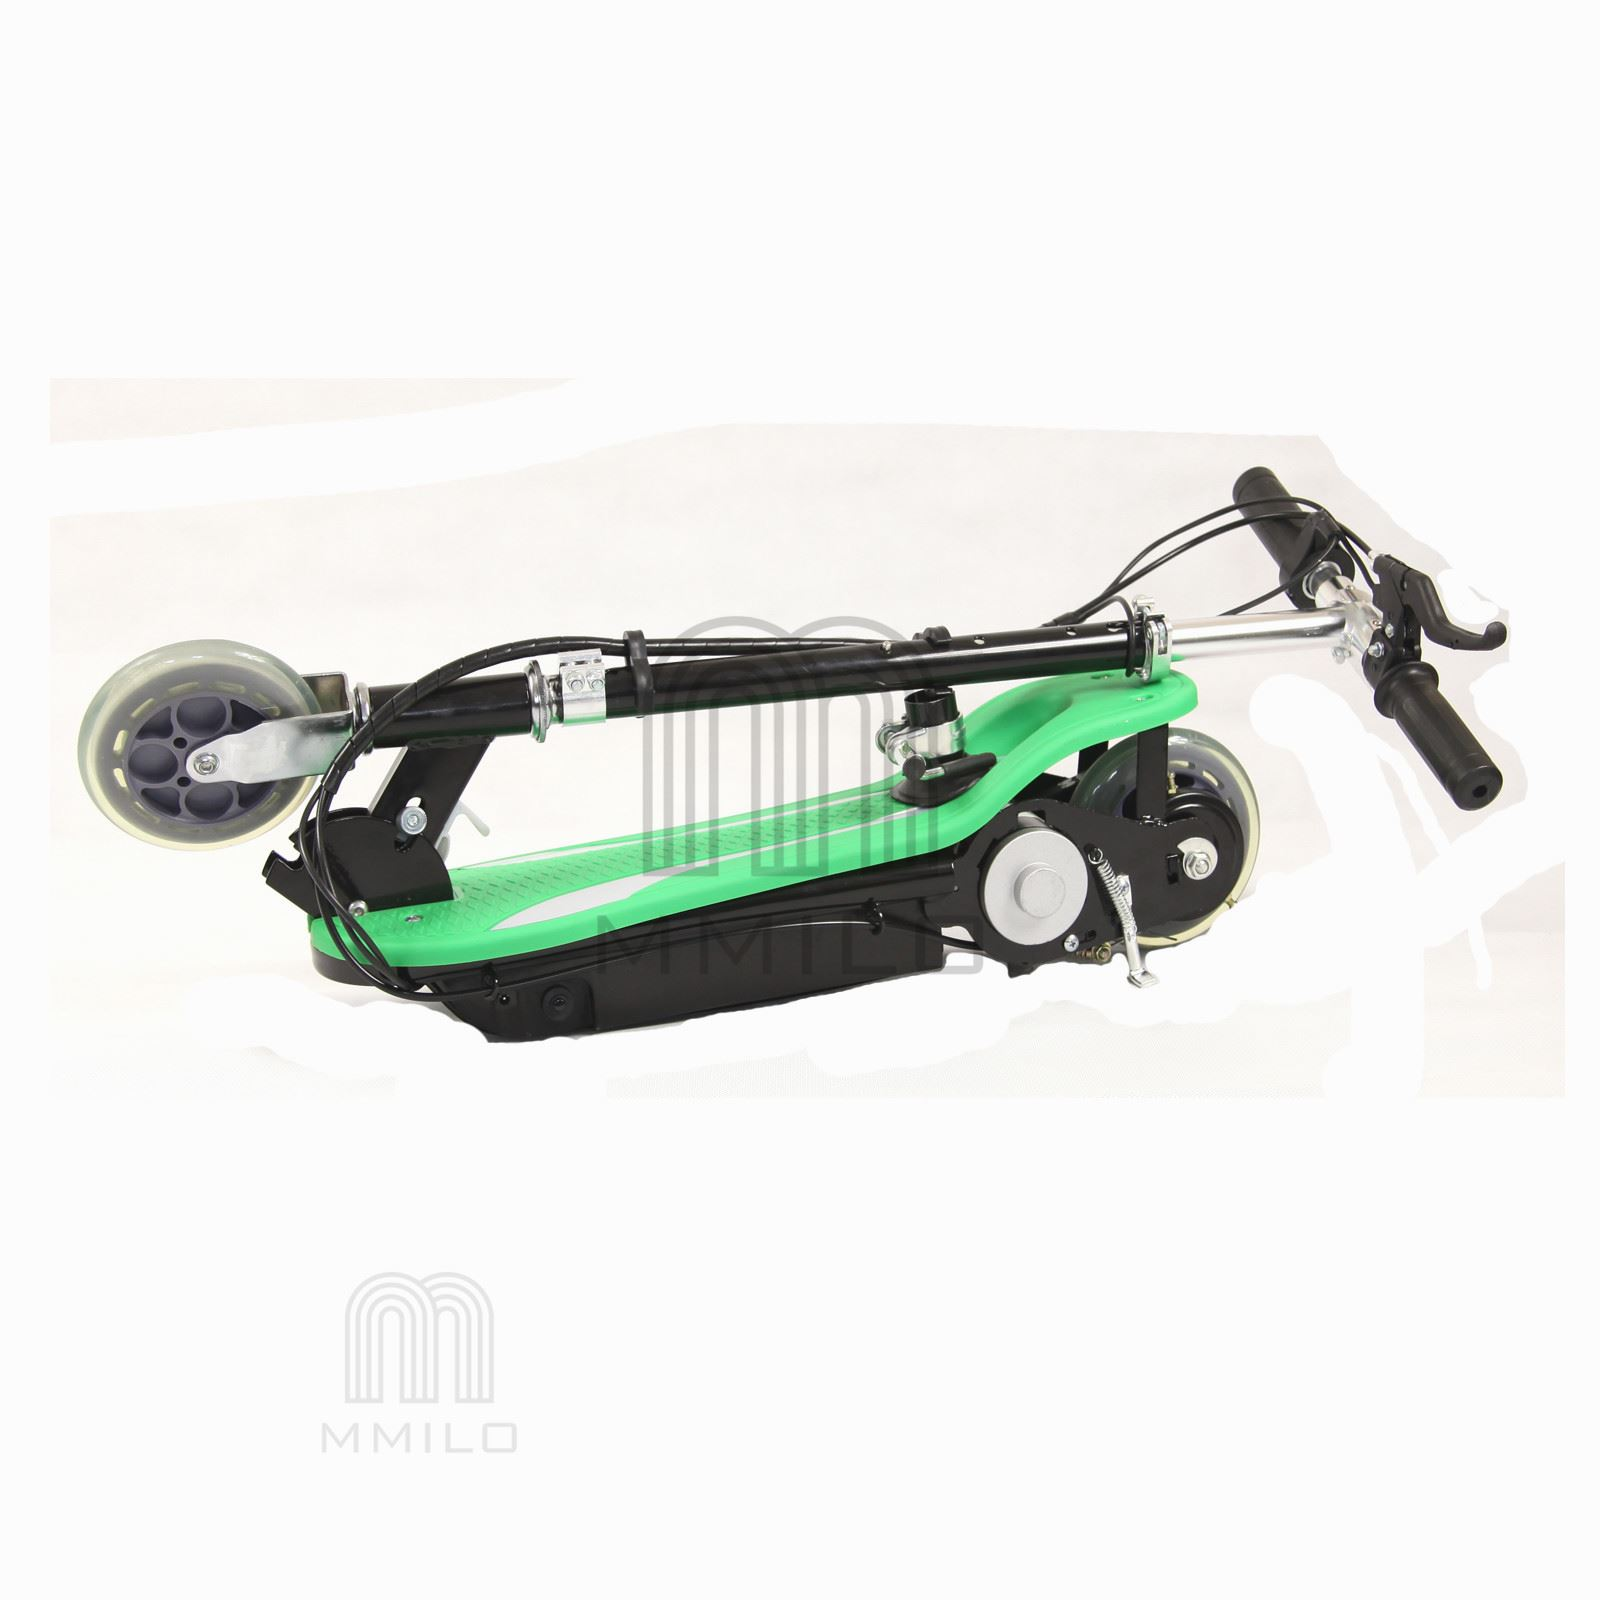 electric e scooter with removable seat ride on battery kids children toys 120w ebay. Black Bedroom Furniture Sets. Home Design Ideas